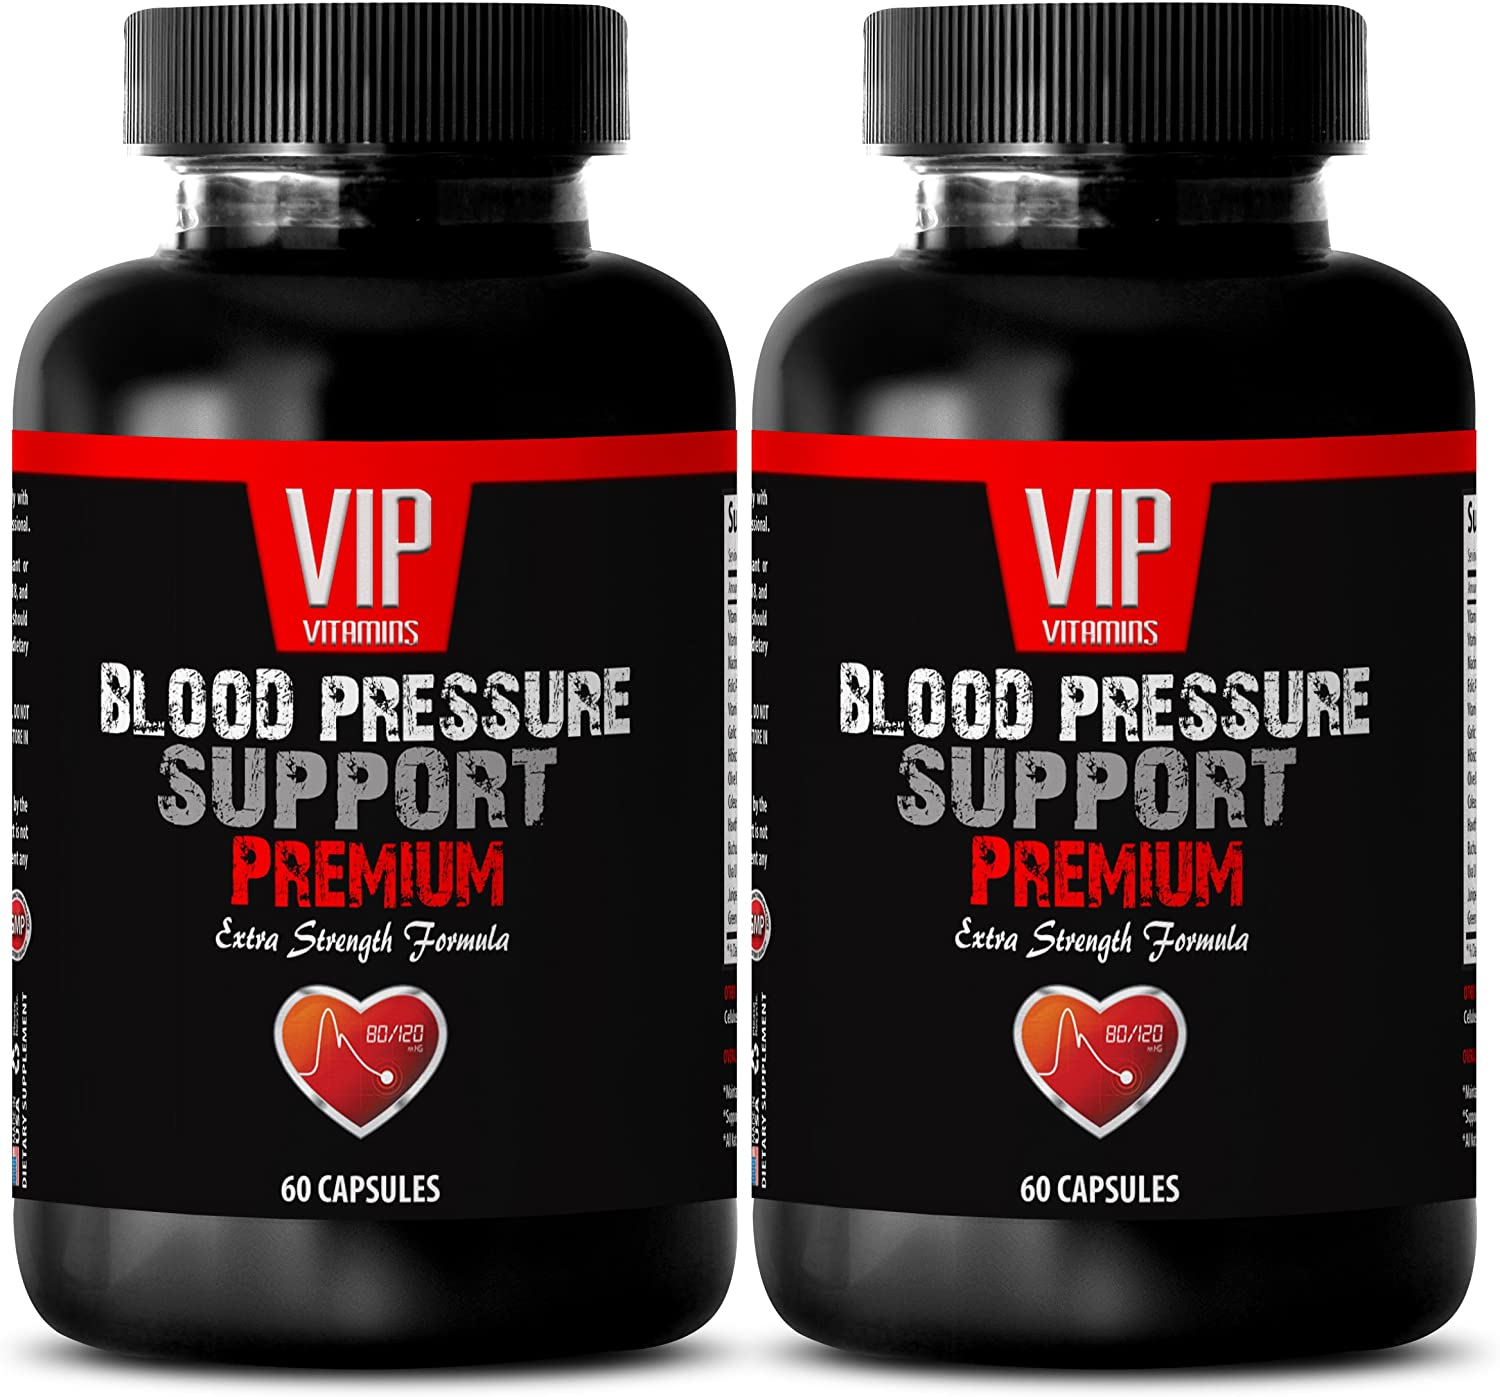 Hibiscus Flower Extract - Blood Pressure Support - Eat More Vegetables (2 Bottles - 120 Capsules)